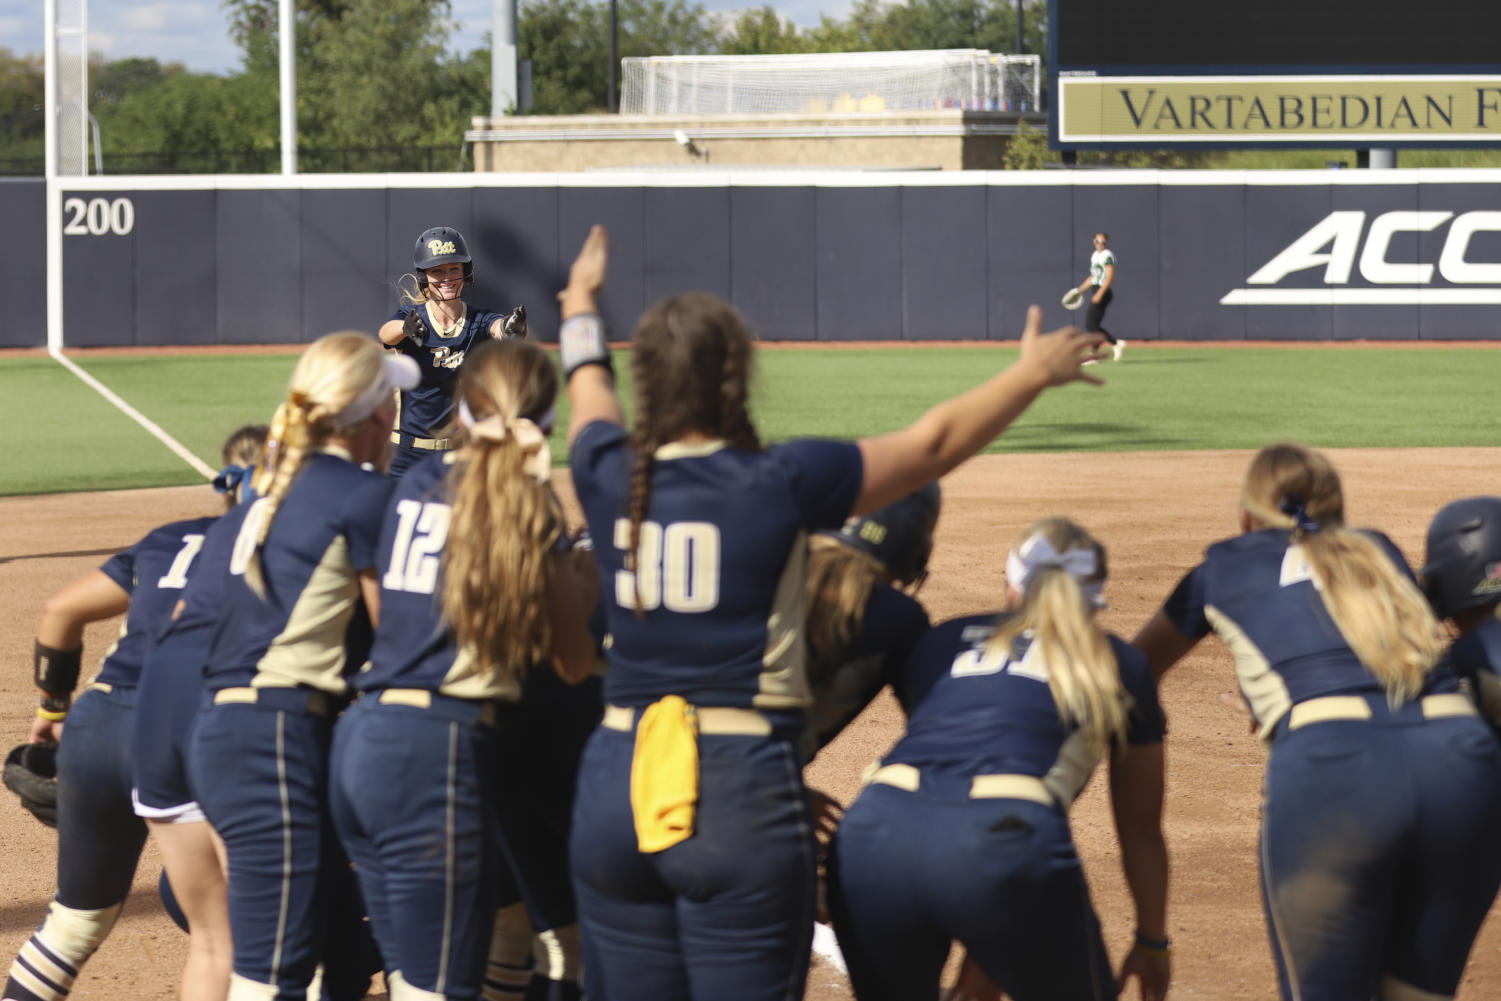 Pitt softball began its season Sunday afternoon with 8-1 and 5-3 victories in a doubleheader against Slippery Rock.